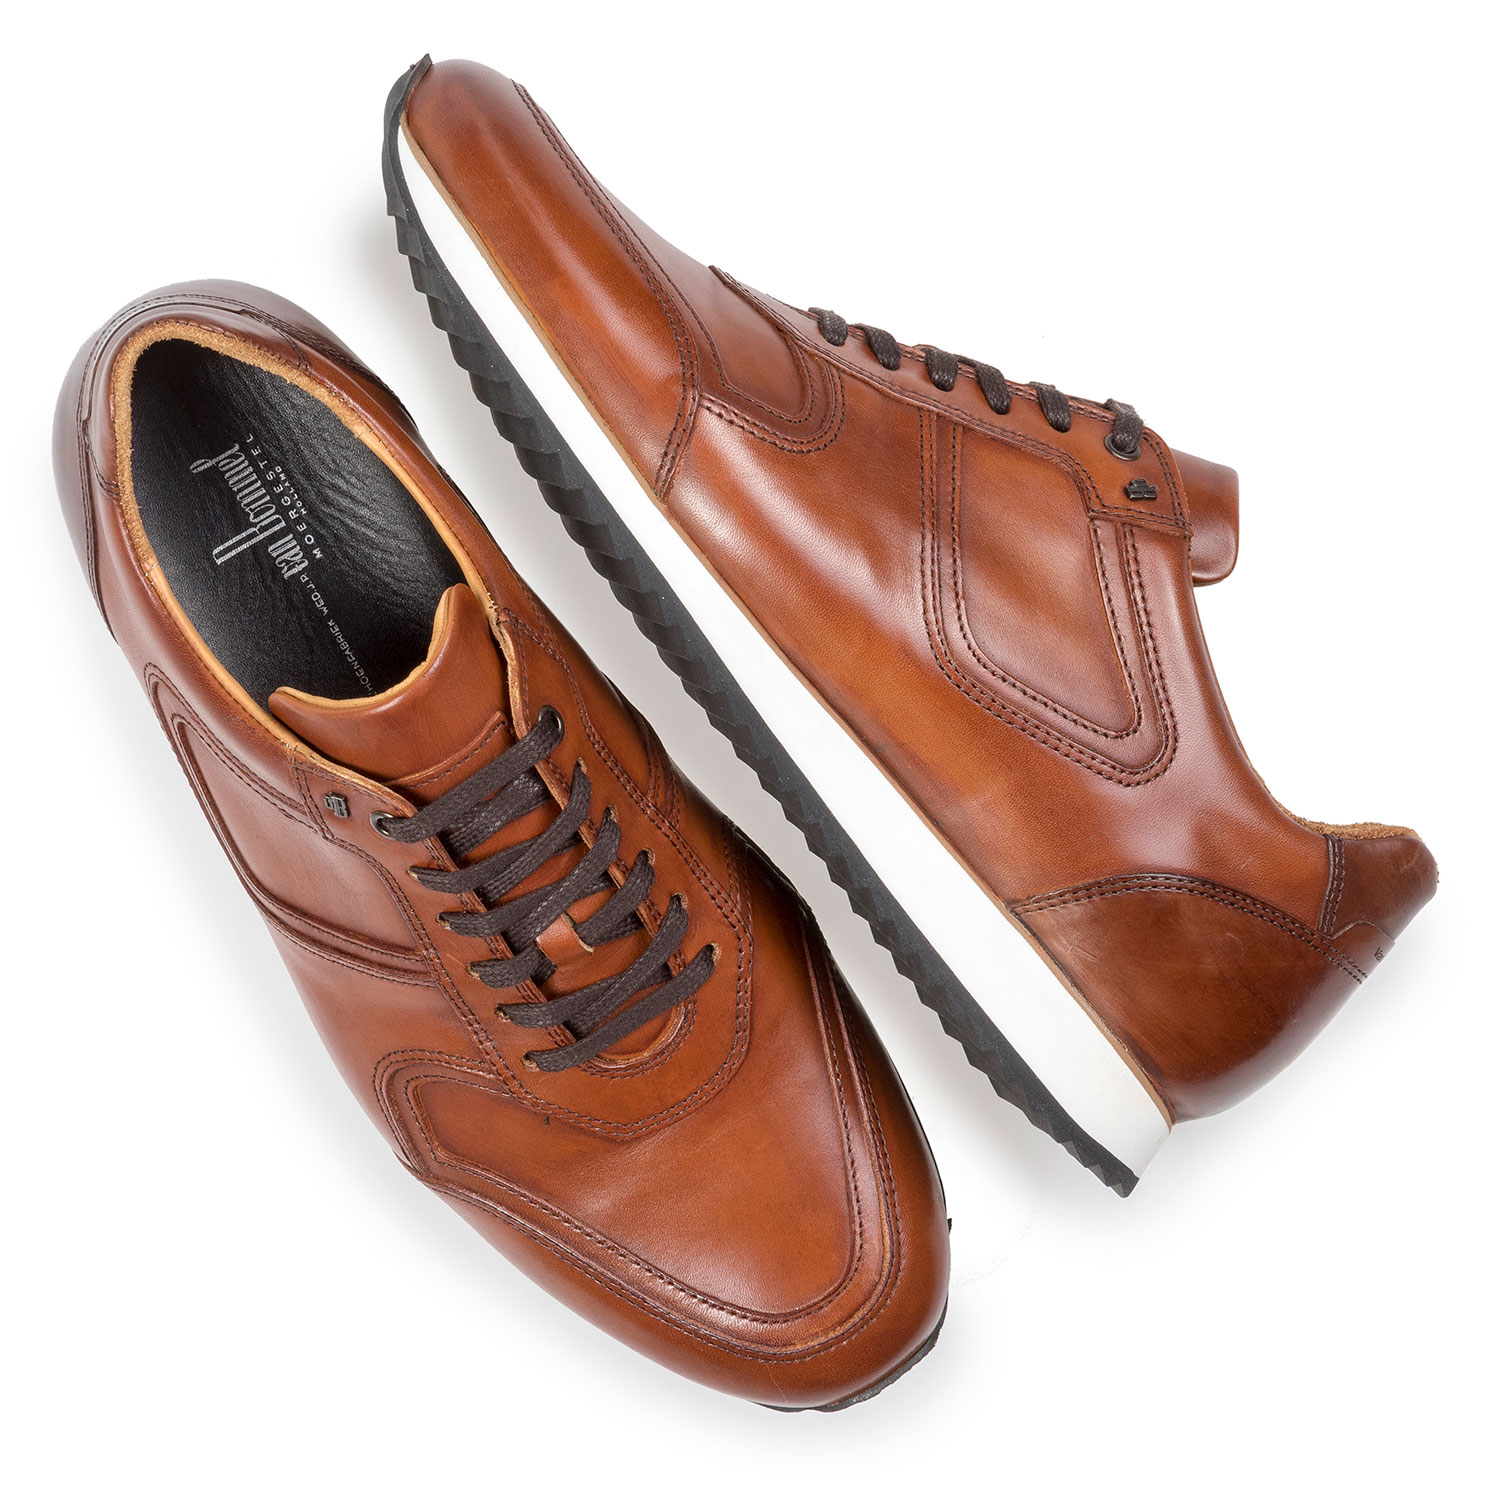 16224/23 - Dark cognac-coloured calf leather lace shoe